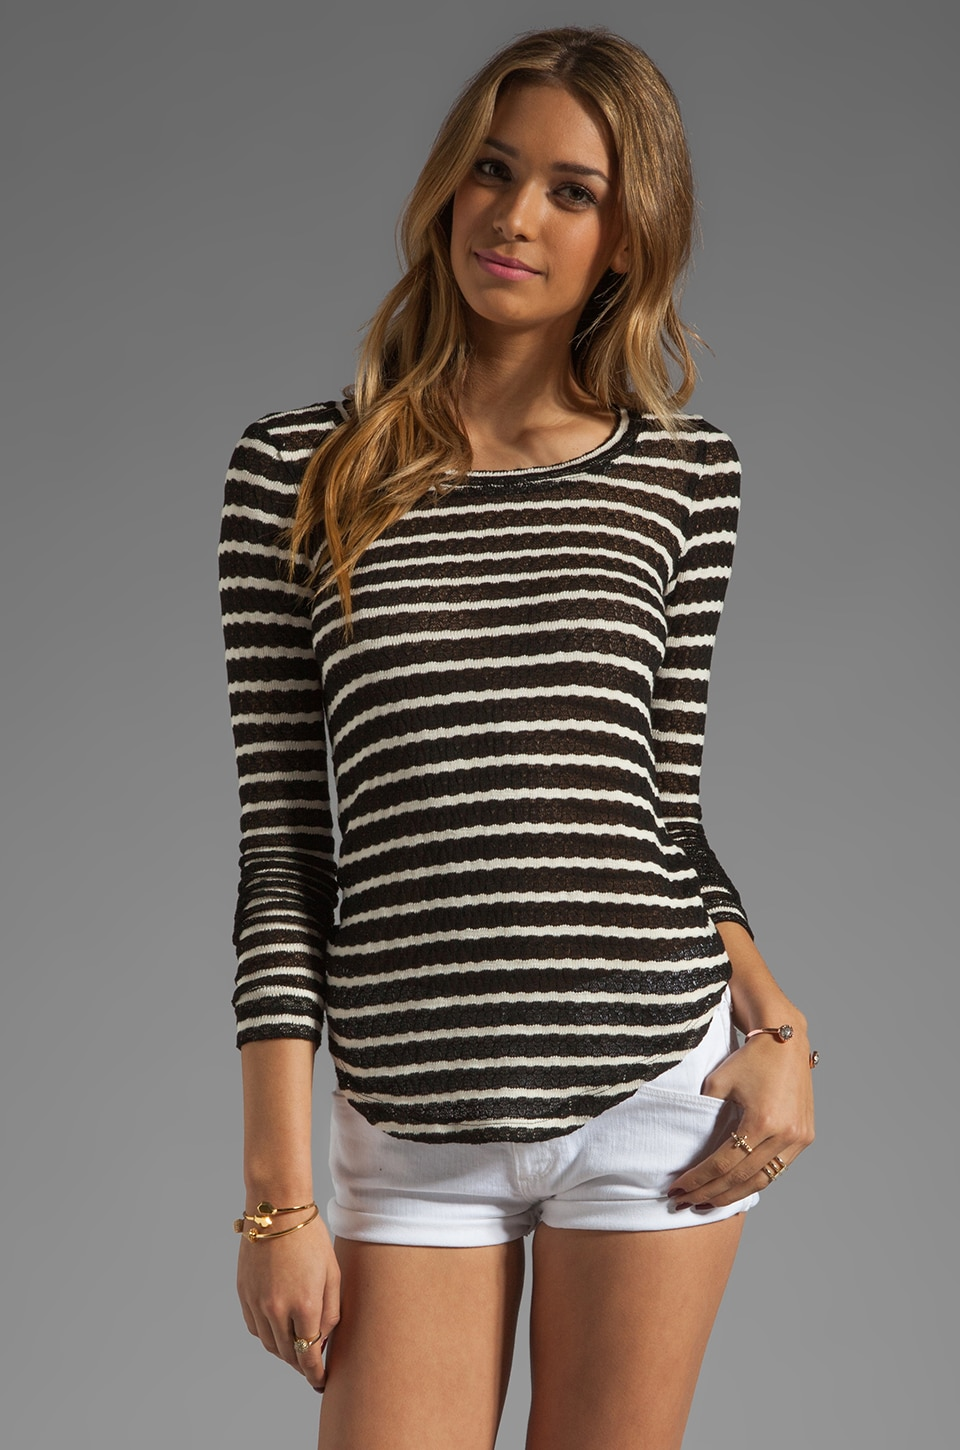 Whetherly Rosewood Rib Stripe Tee in Black/Cream